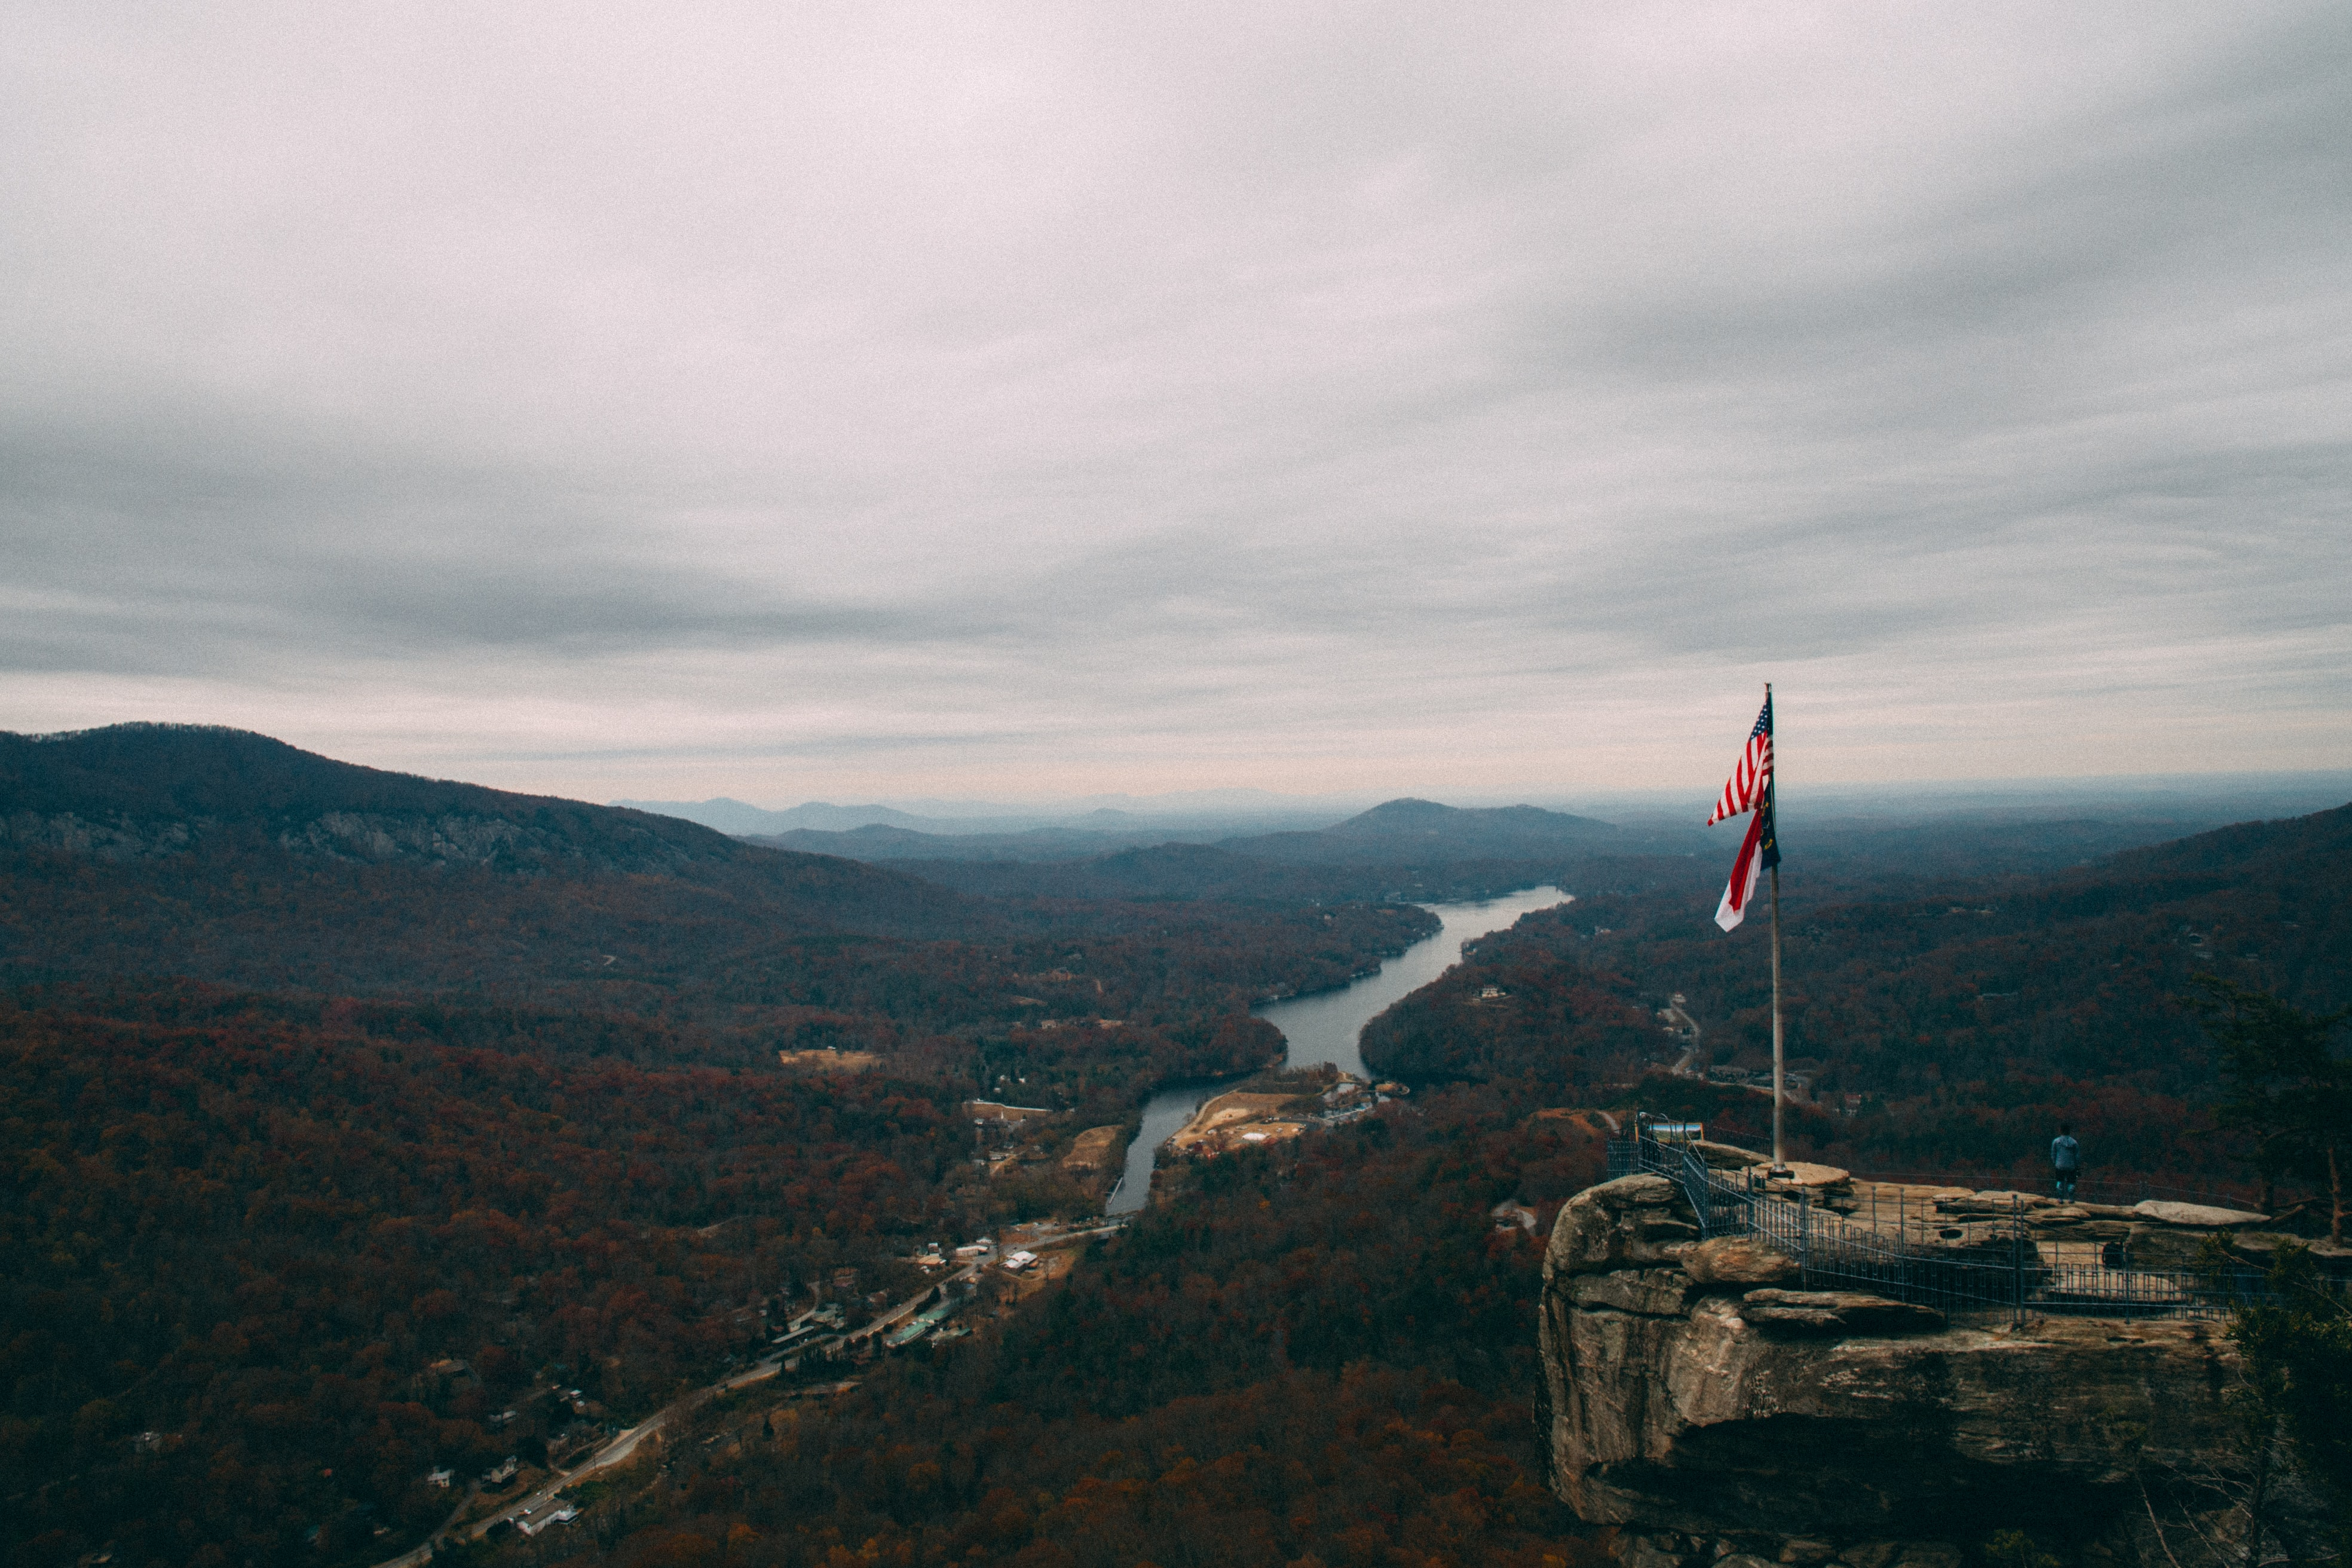 aerial photography of U.S. flag on cliff